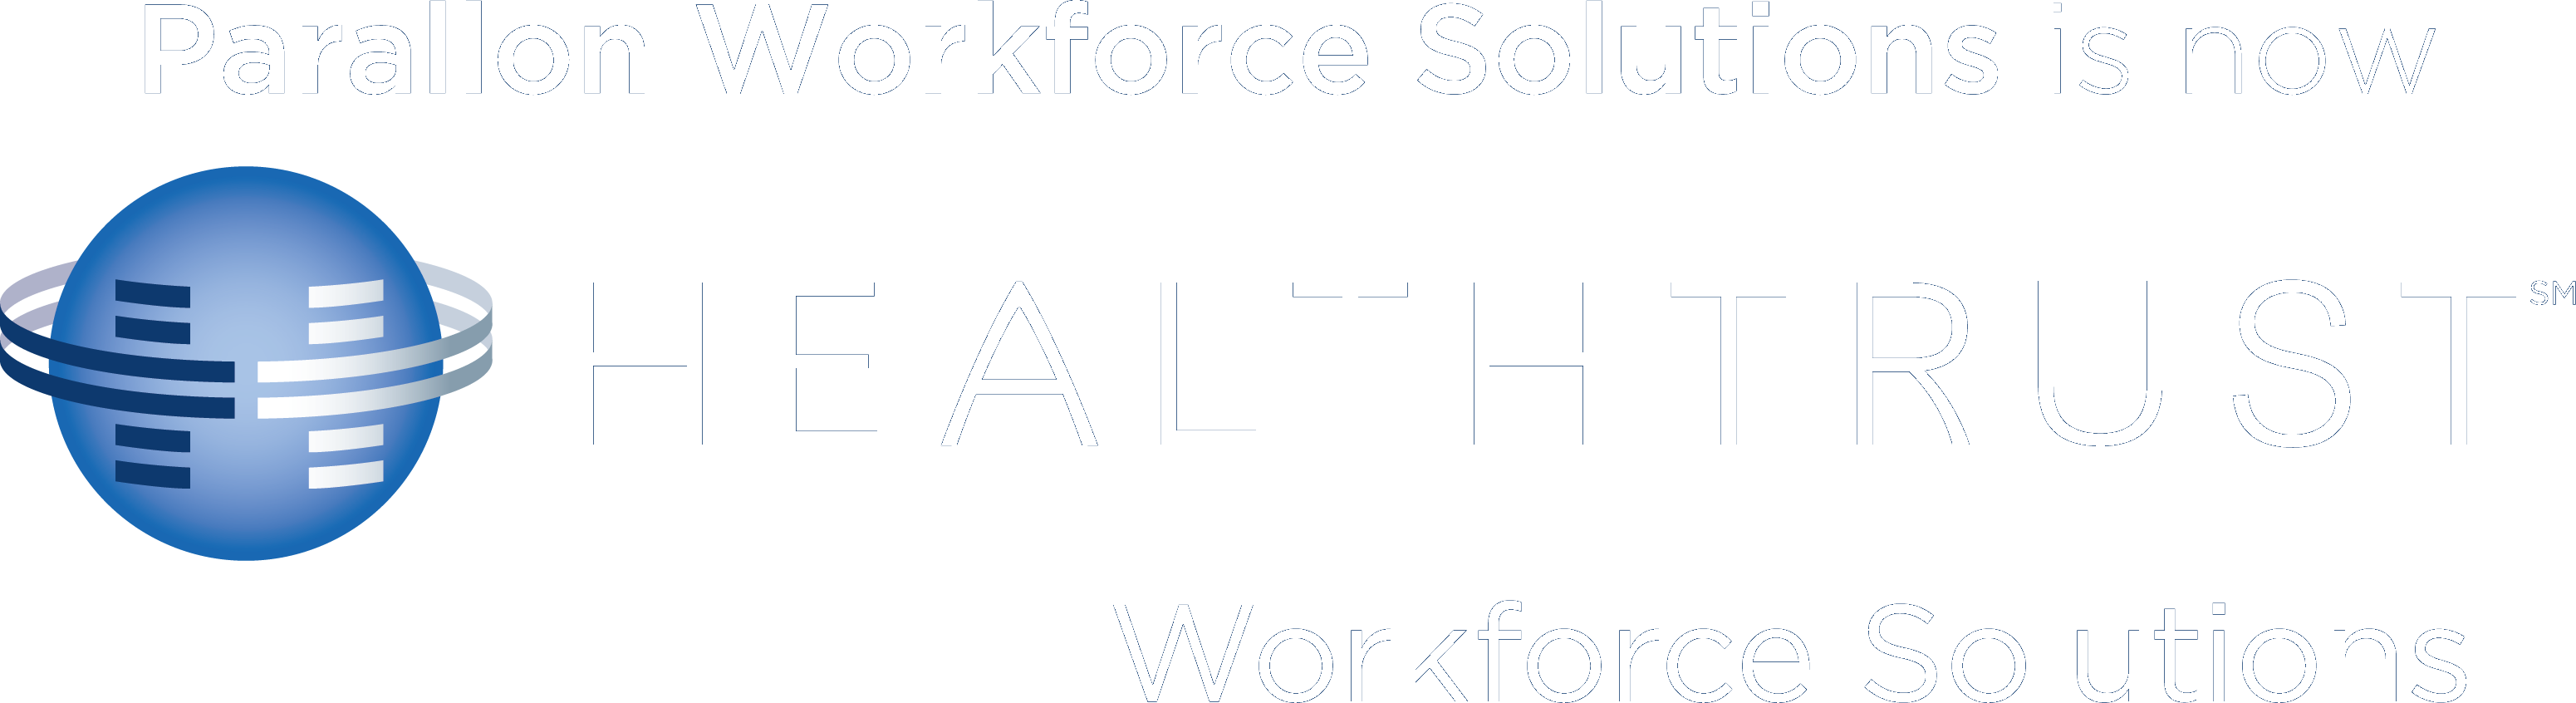 Parallon Workforce Solutions is now HealthTrust Workforce Solutions